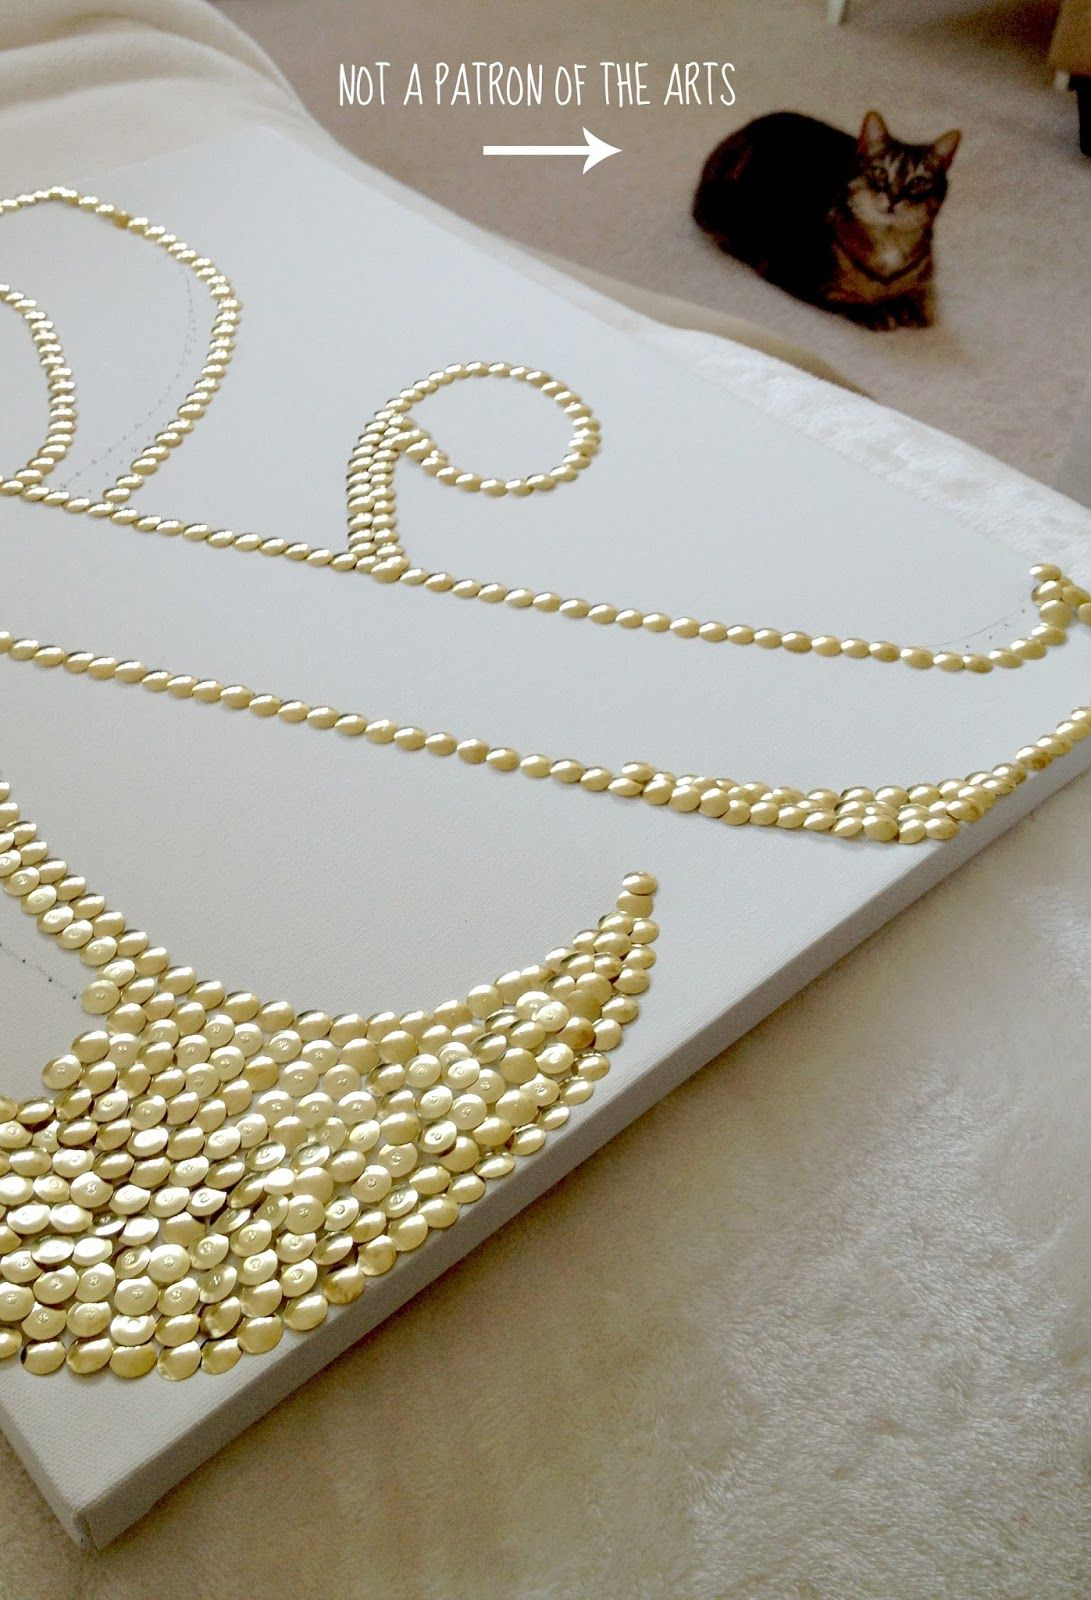 Canvas and gold thumbtacks - wall art DIY | Decorations ...